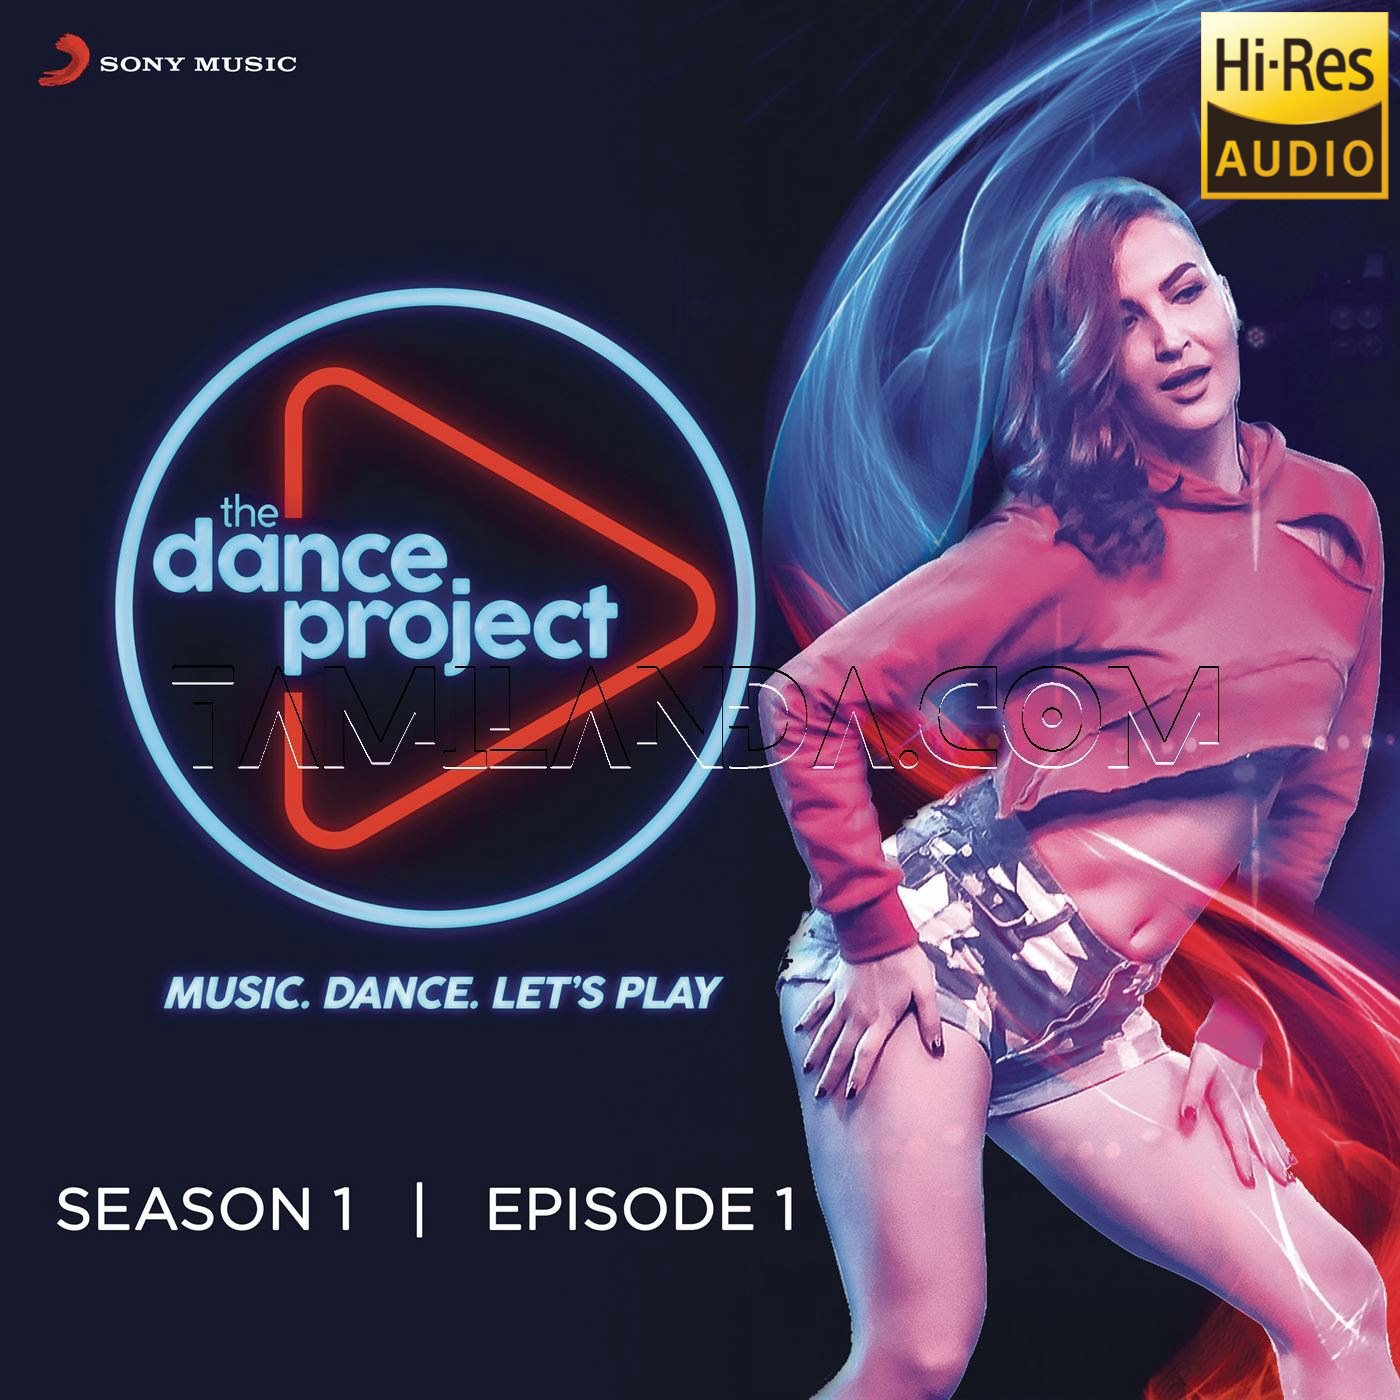 The Dance Project (Season 1: Episode 1) 24 BIT 96 KHZ FLAC Songs